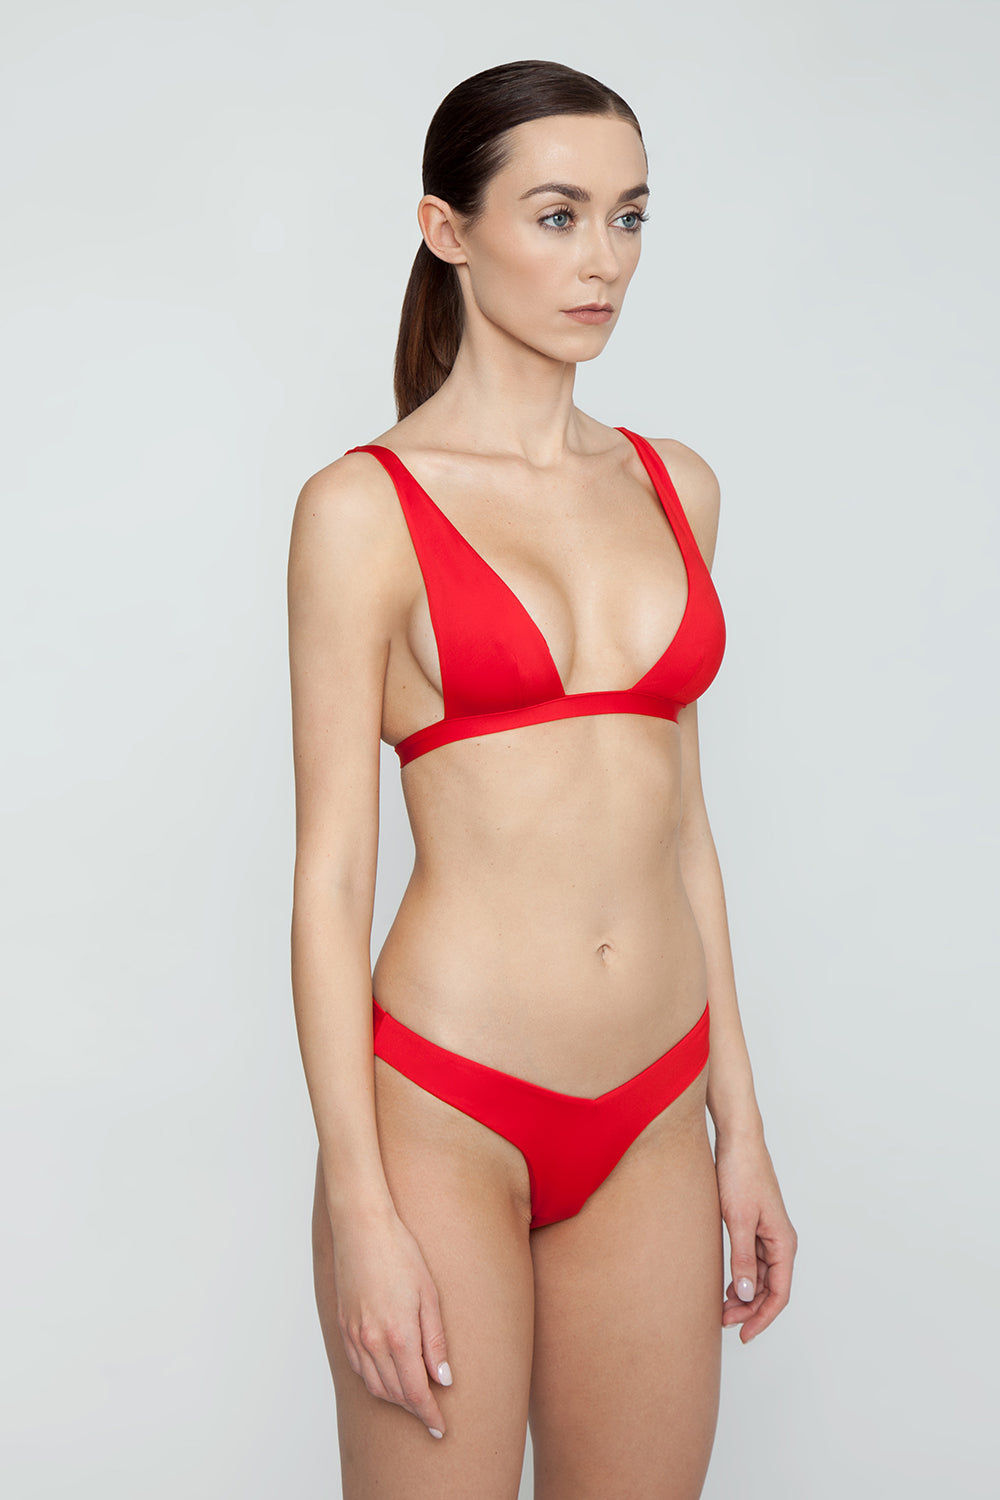 MONICA HANSEN BEACHWEAR Babe Watch V Bikini Bottom - Red Bikini Bottom | Red| Monica Hansen Beachwear Babe Watch V Bikini Bottom - Red Features:  Waist cut down in a V shape in front and in back Sides can be worn low rise or mid rise High cut leg  Cheeky coverage Italian fabric 85% Nylon 15% Elastane Manufactured in Italy Hand wash cold.  Dry Flat Side View